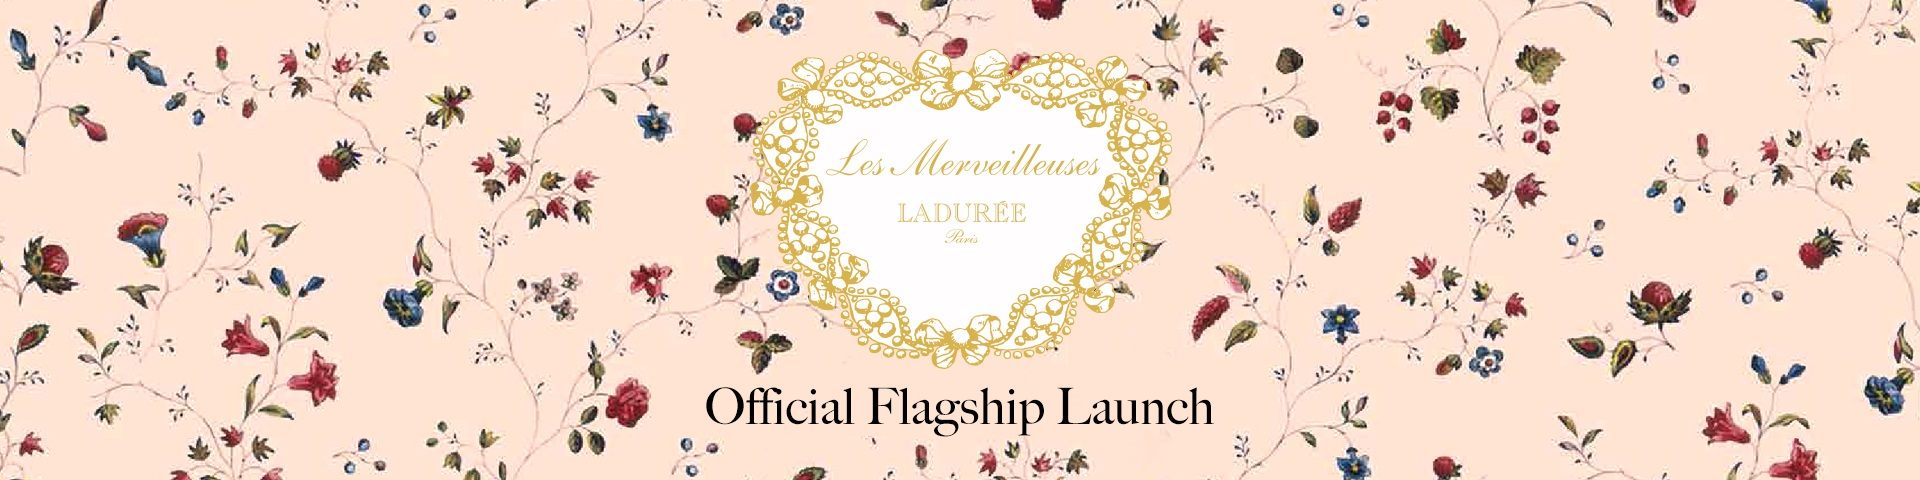 Laduree Flagship Top Banner